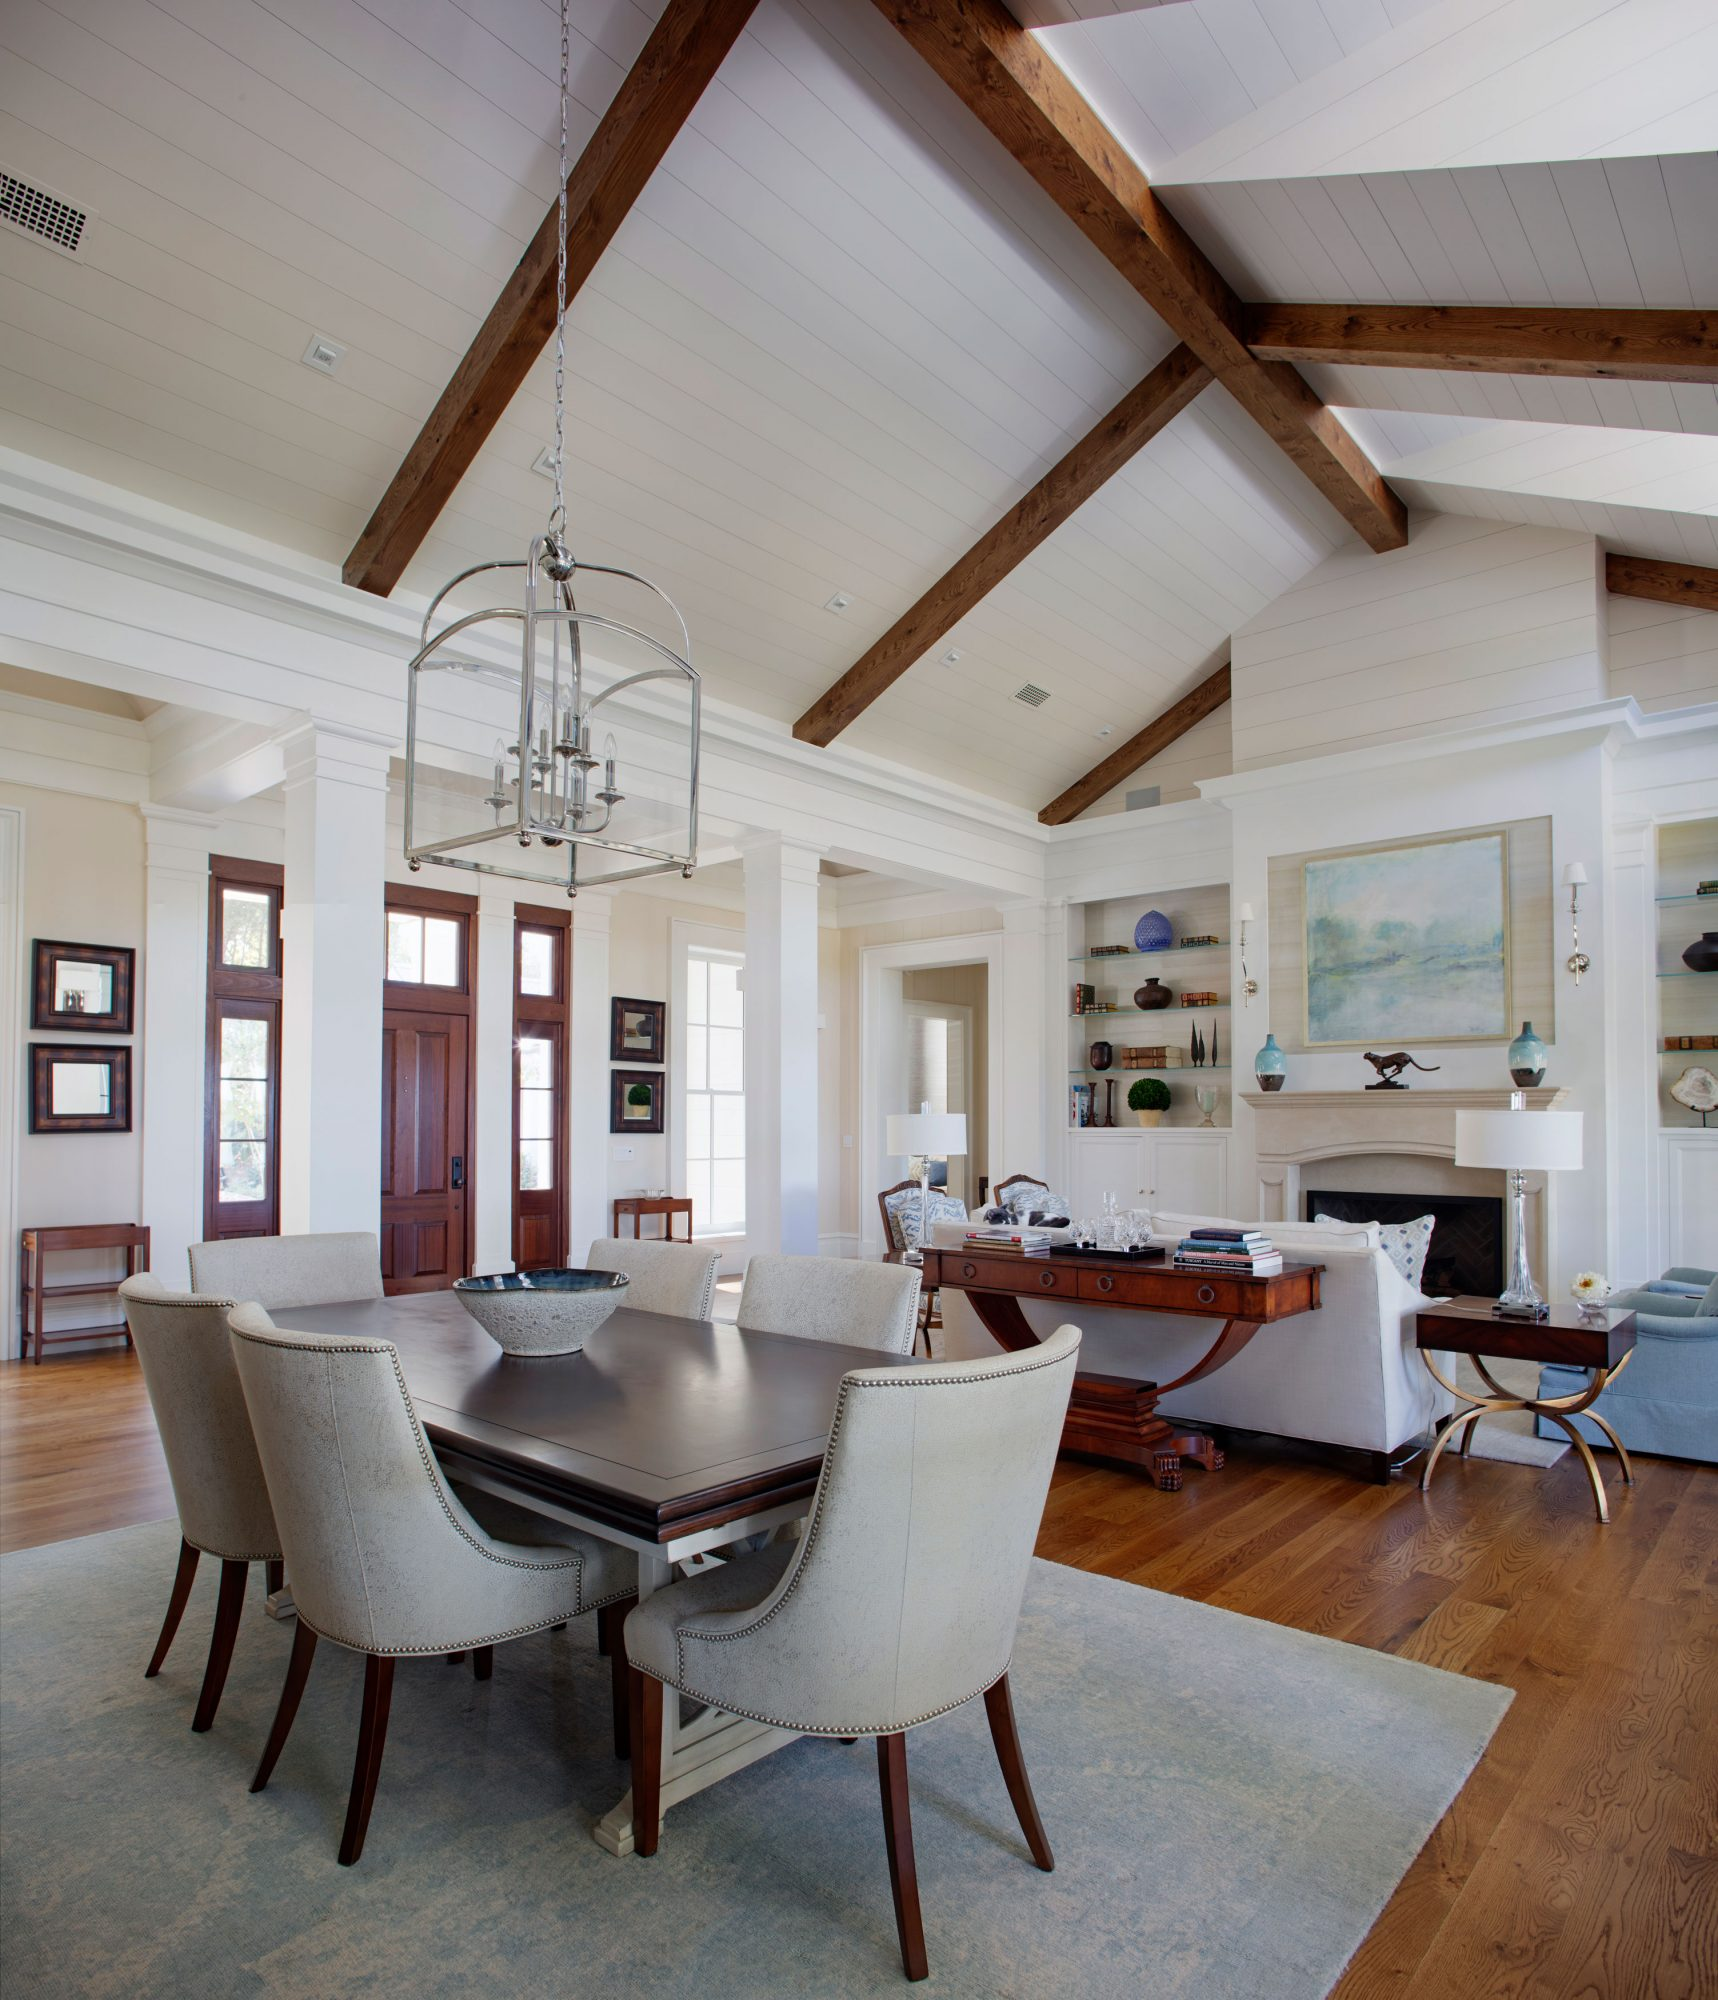 Open Concept Dining Room and Living Room with Vaulted Ceiling and Beams